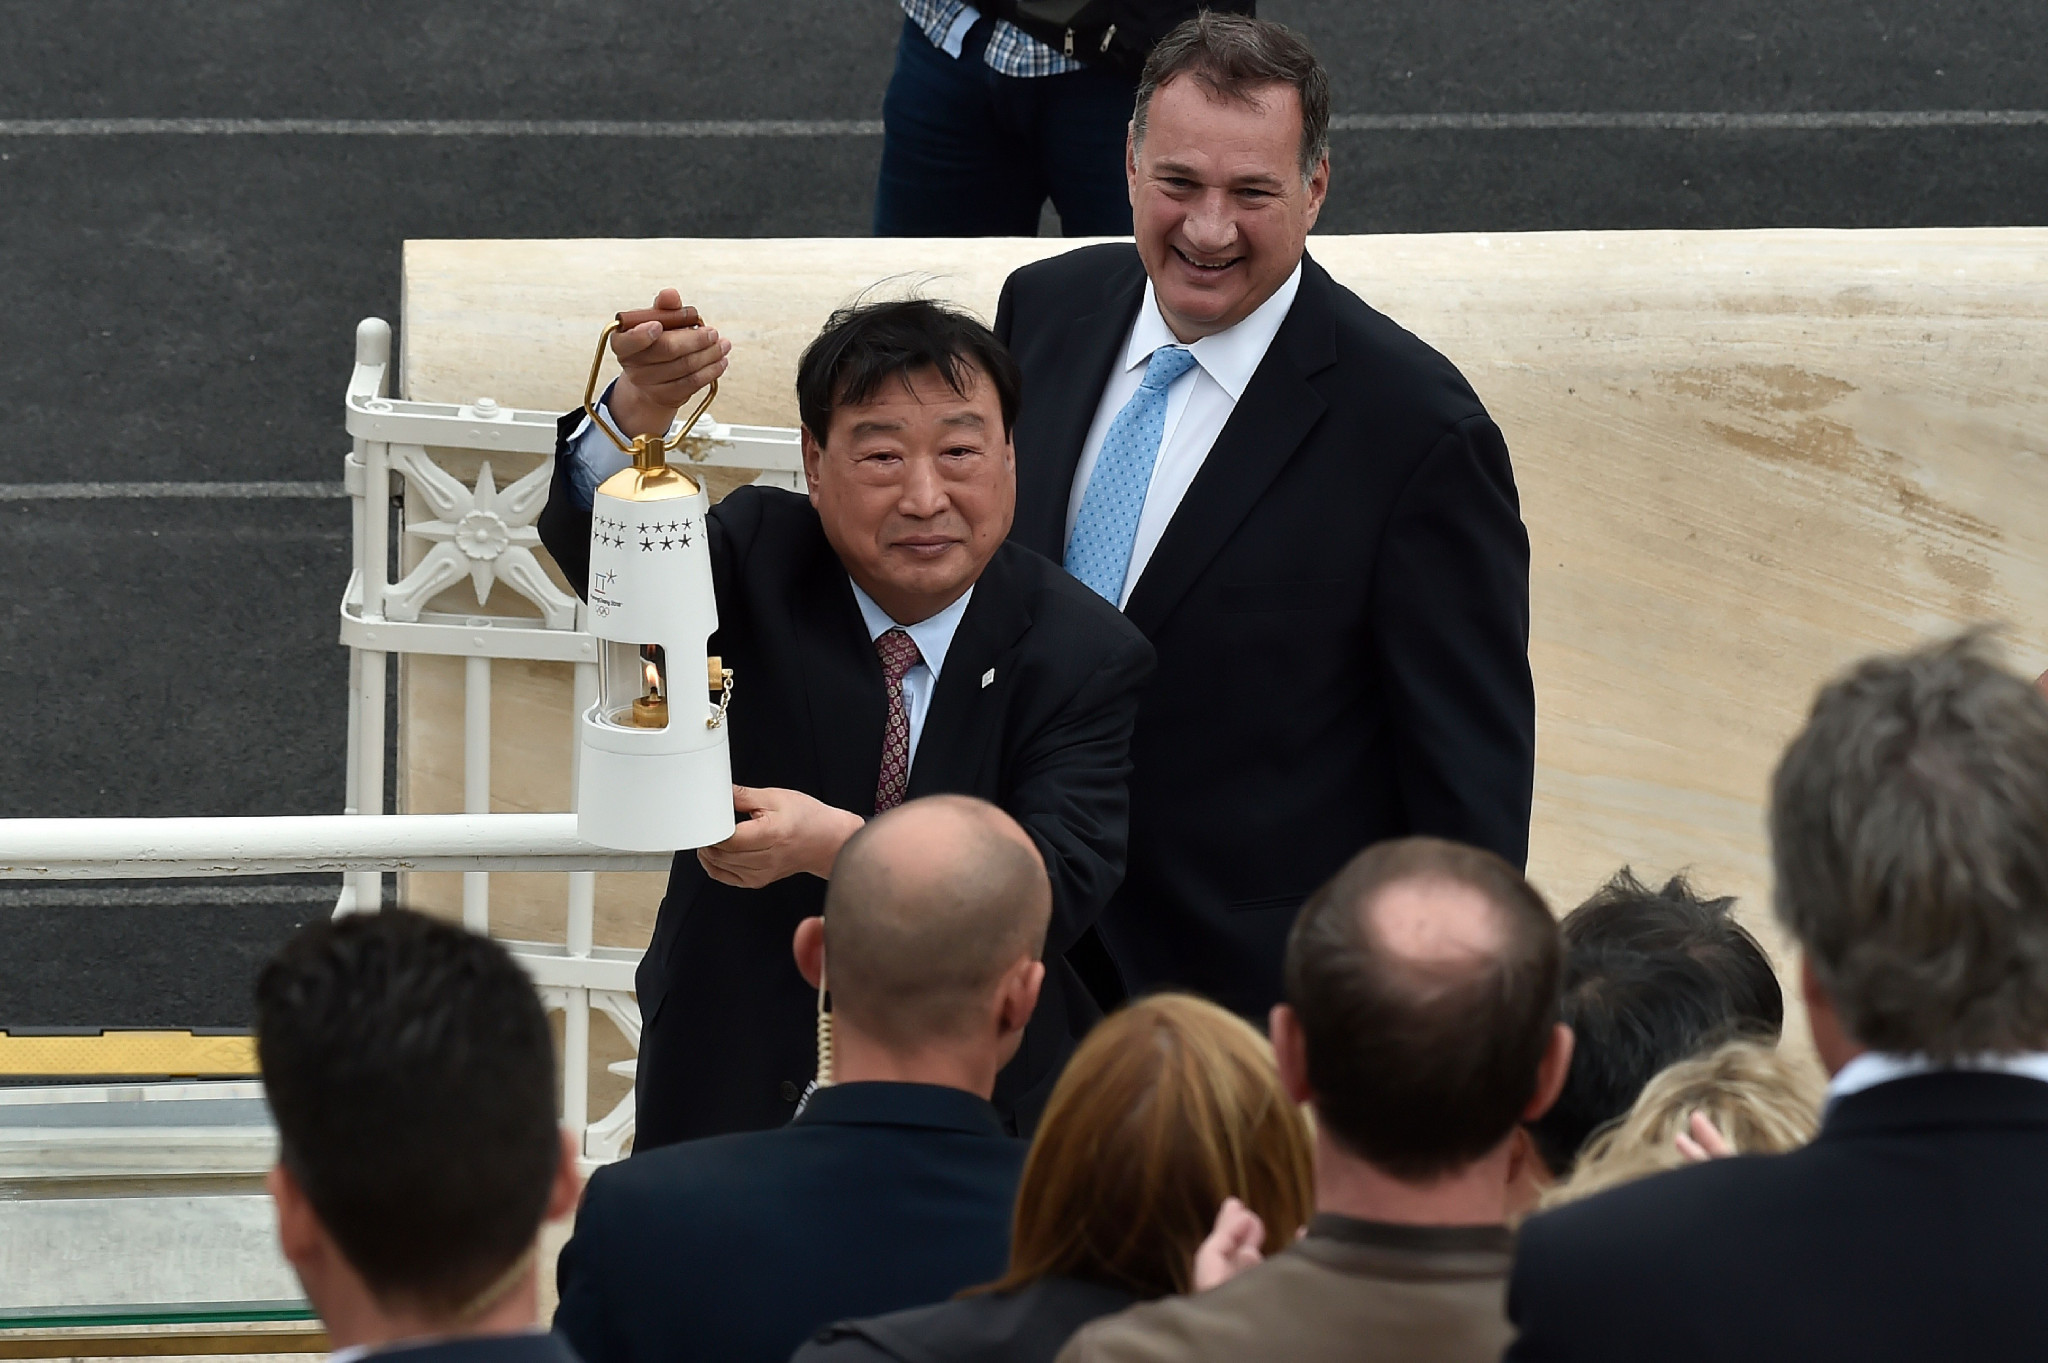 Pyeongchang 2018 President Lee Hee-beom is entrusted with the Olympic flame ©Getty Images